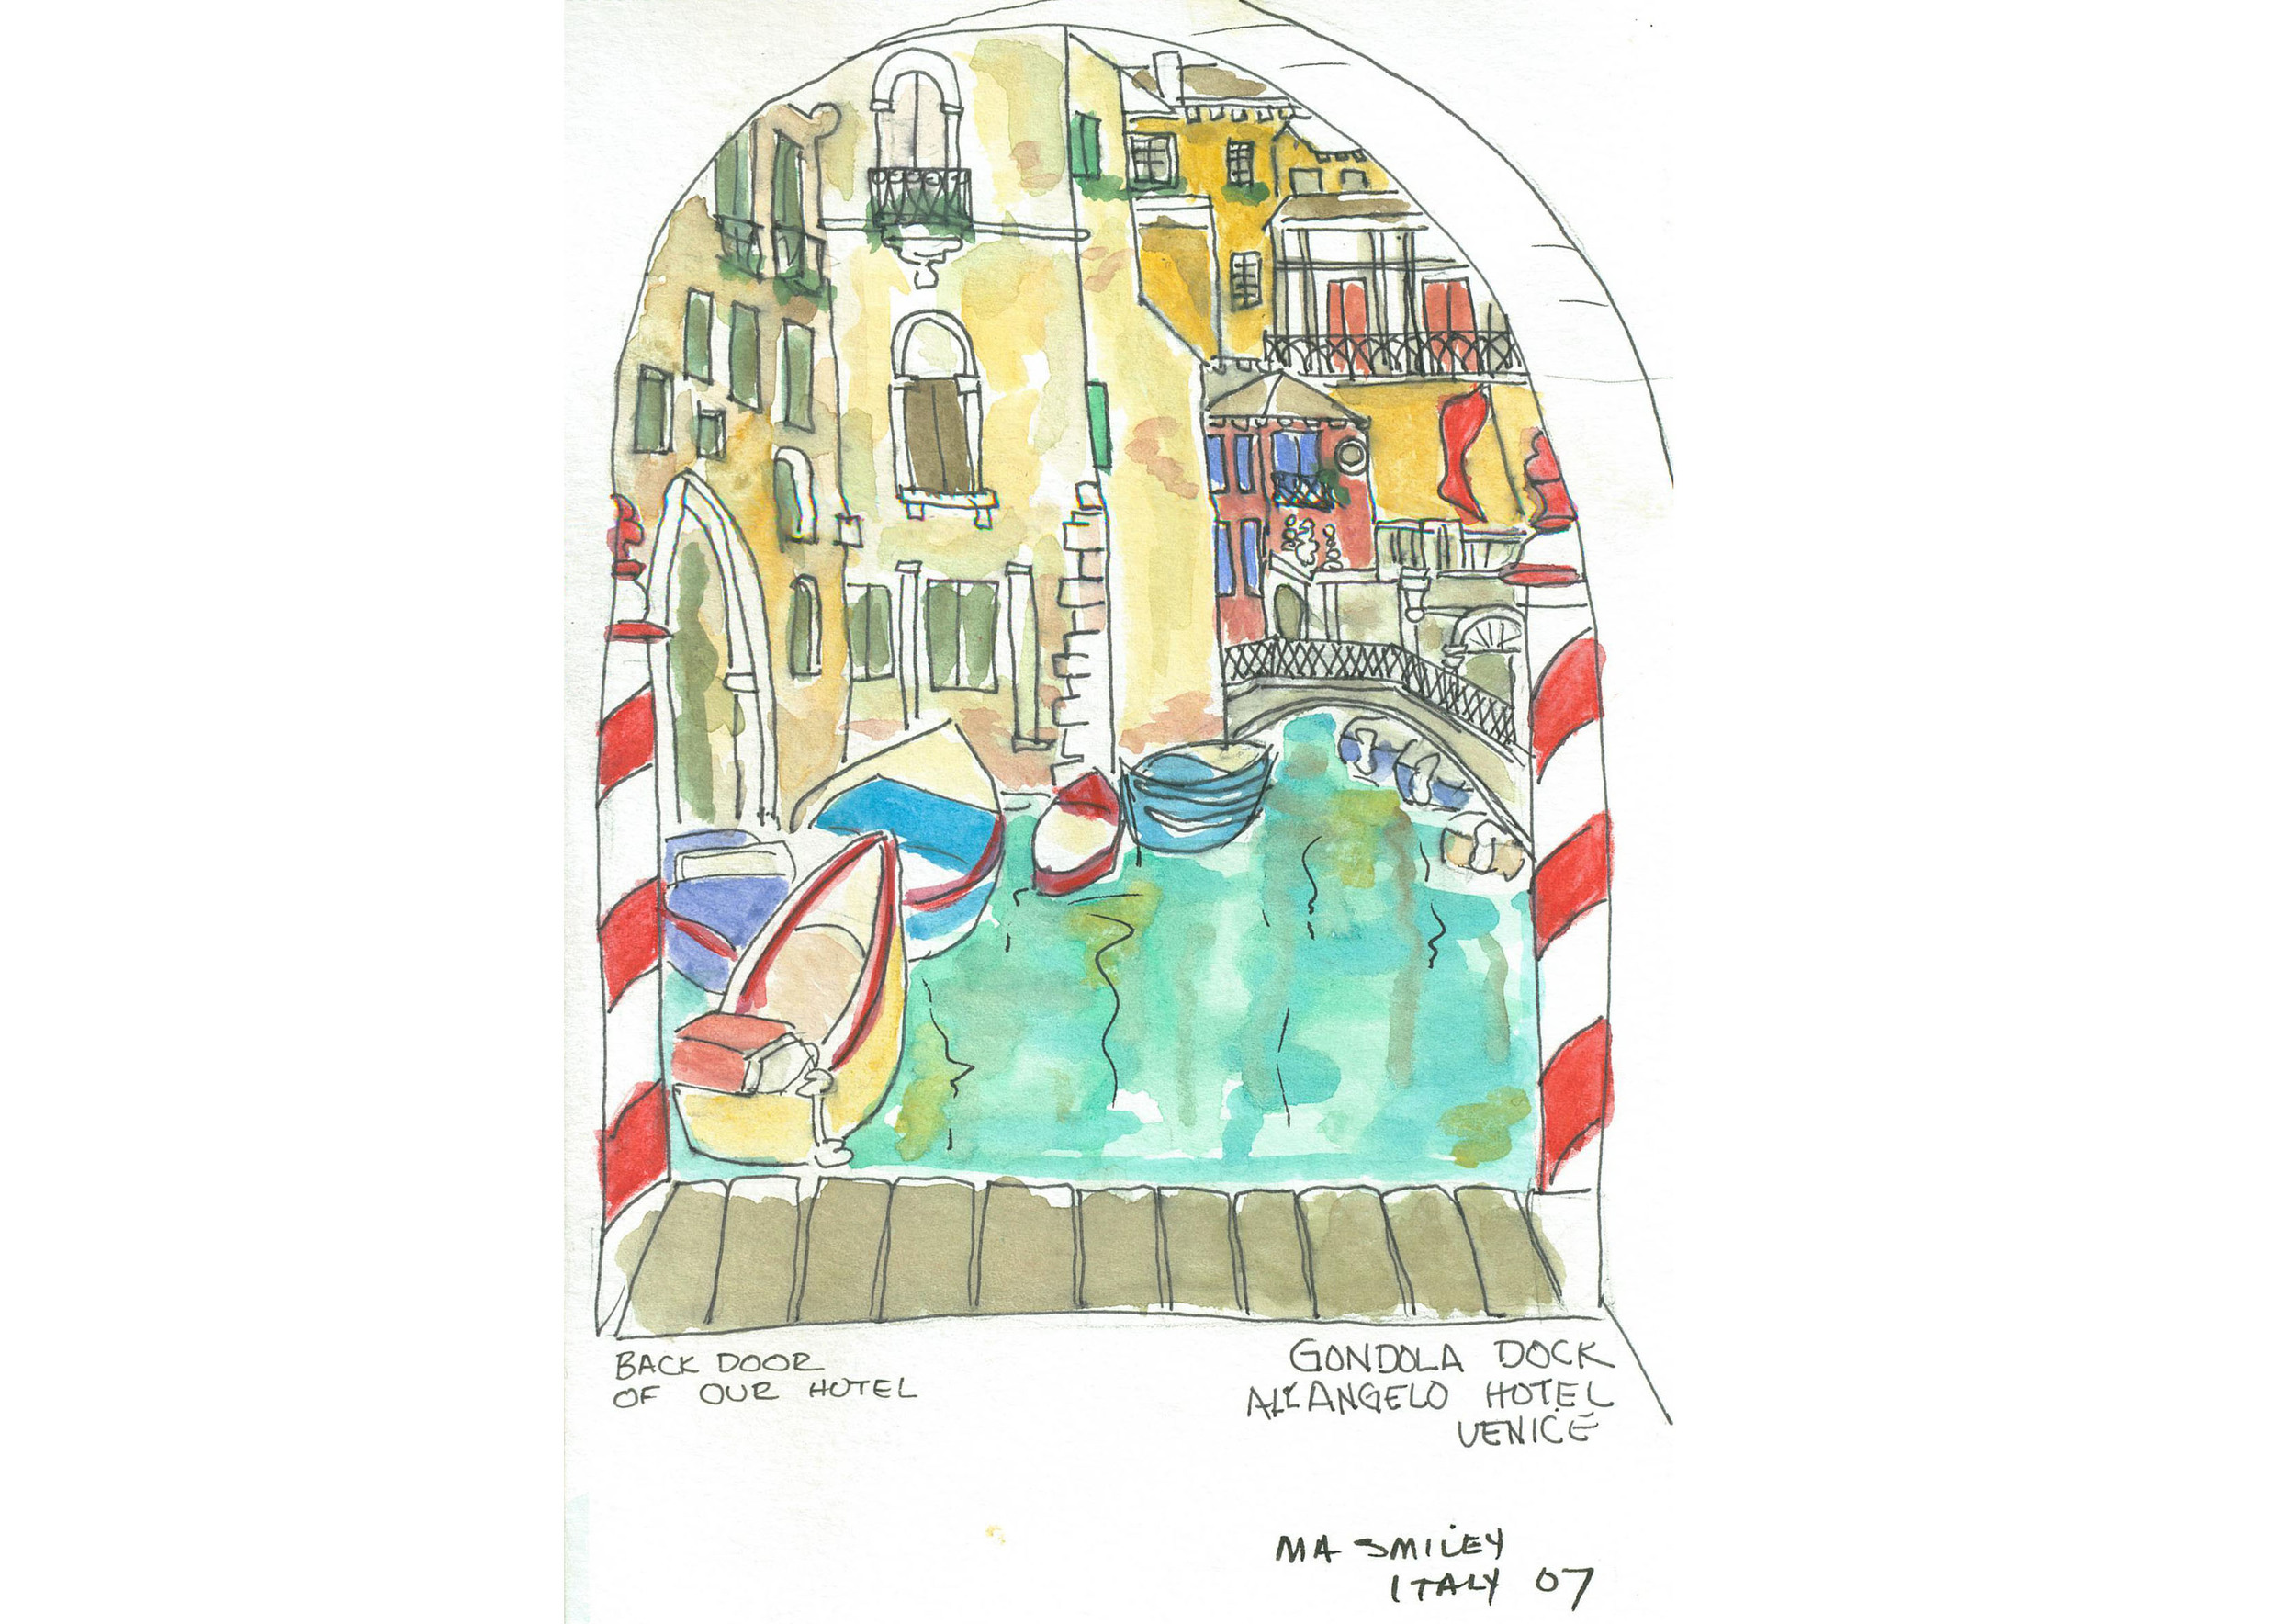 One of 30 watercolor drawings done plein aire on the run during a trip to Italy for Mary Anne's trip album.